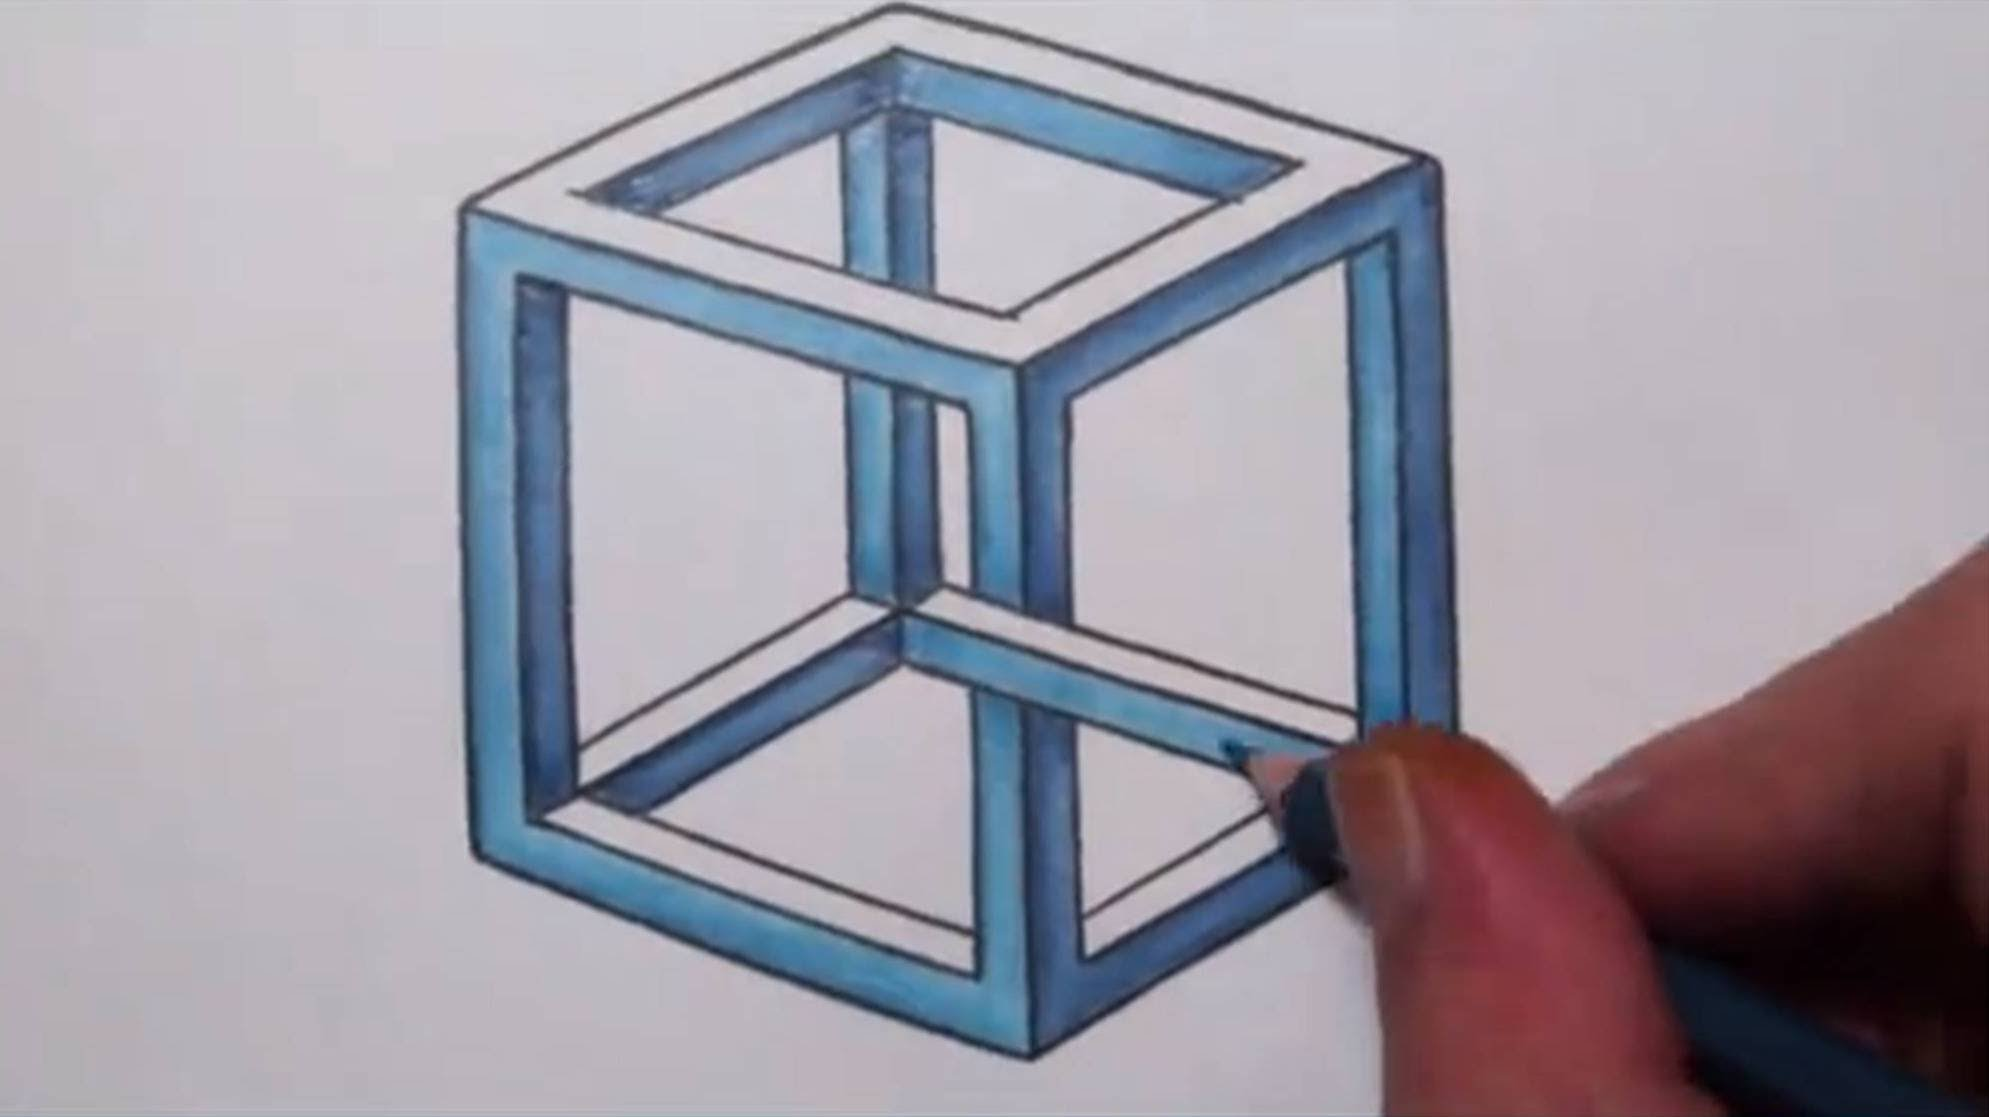 Drawn stare penrose YouTube Impossible To an Draw